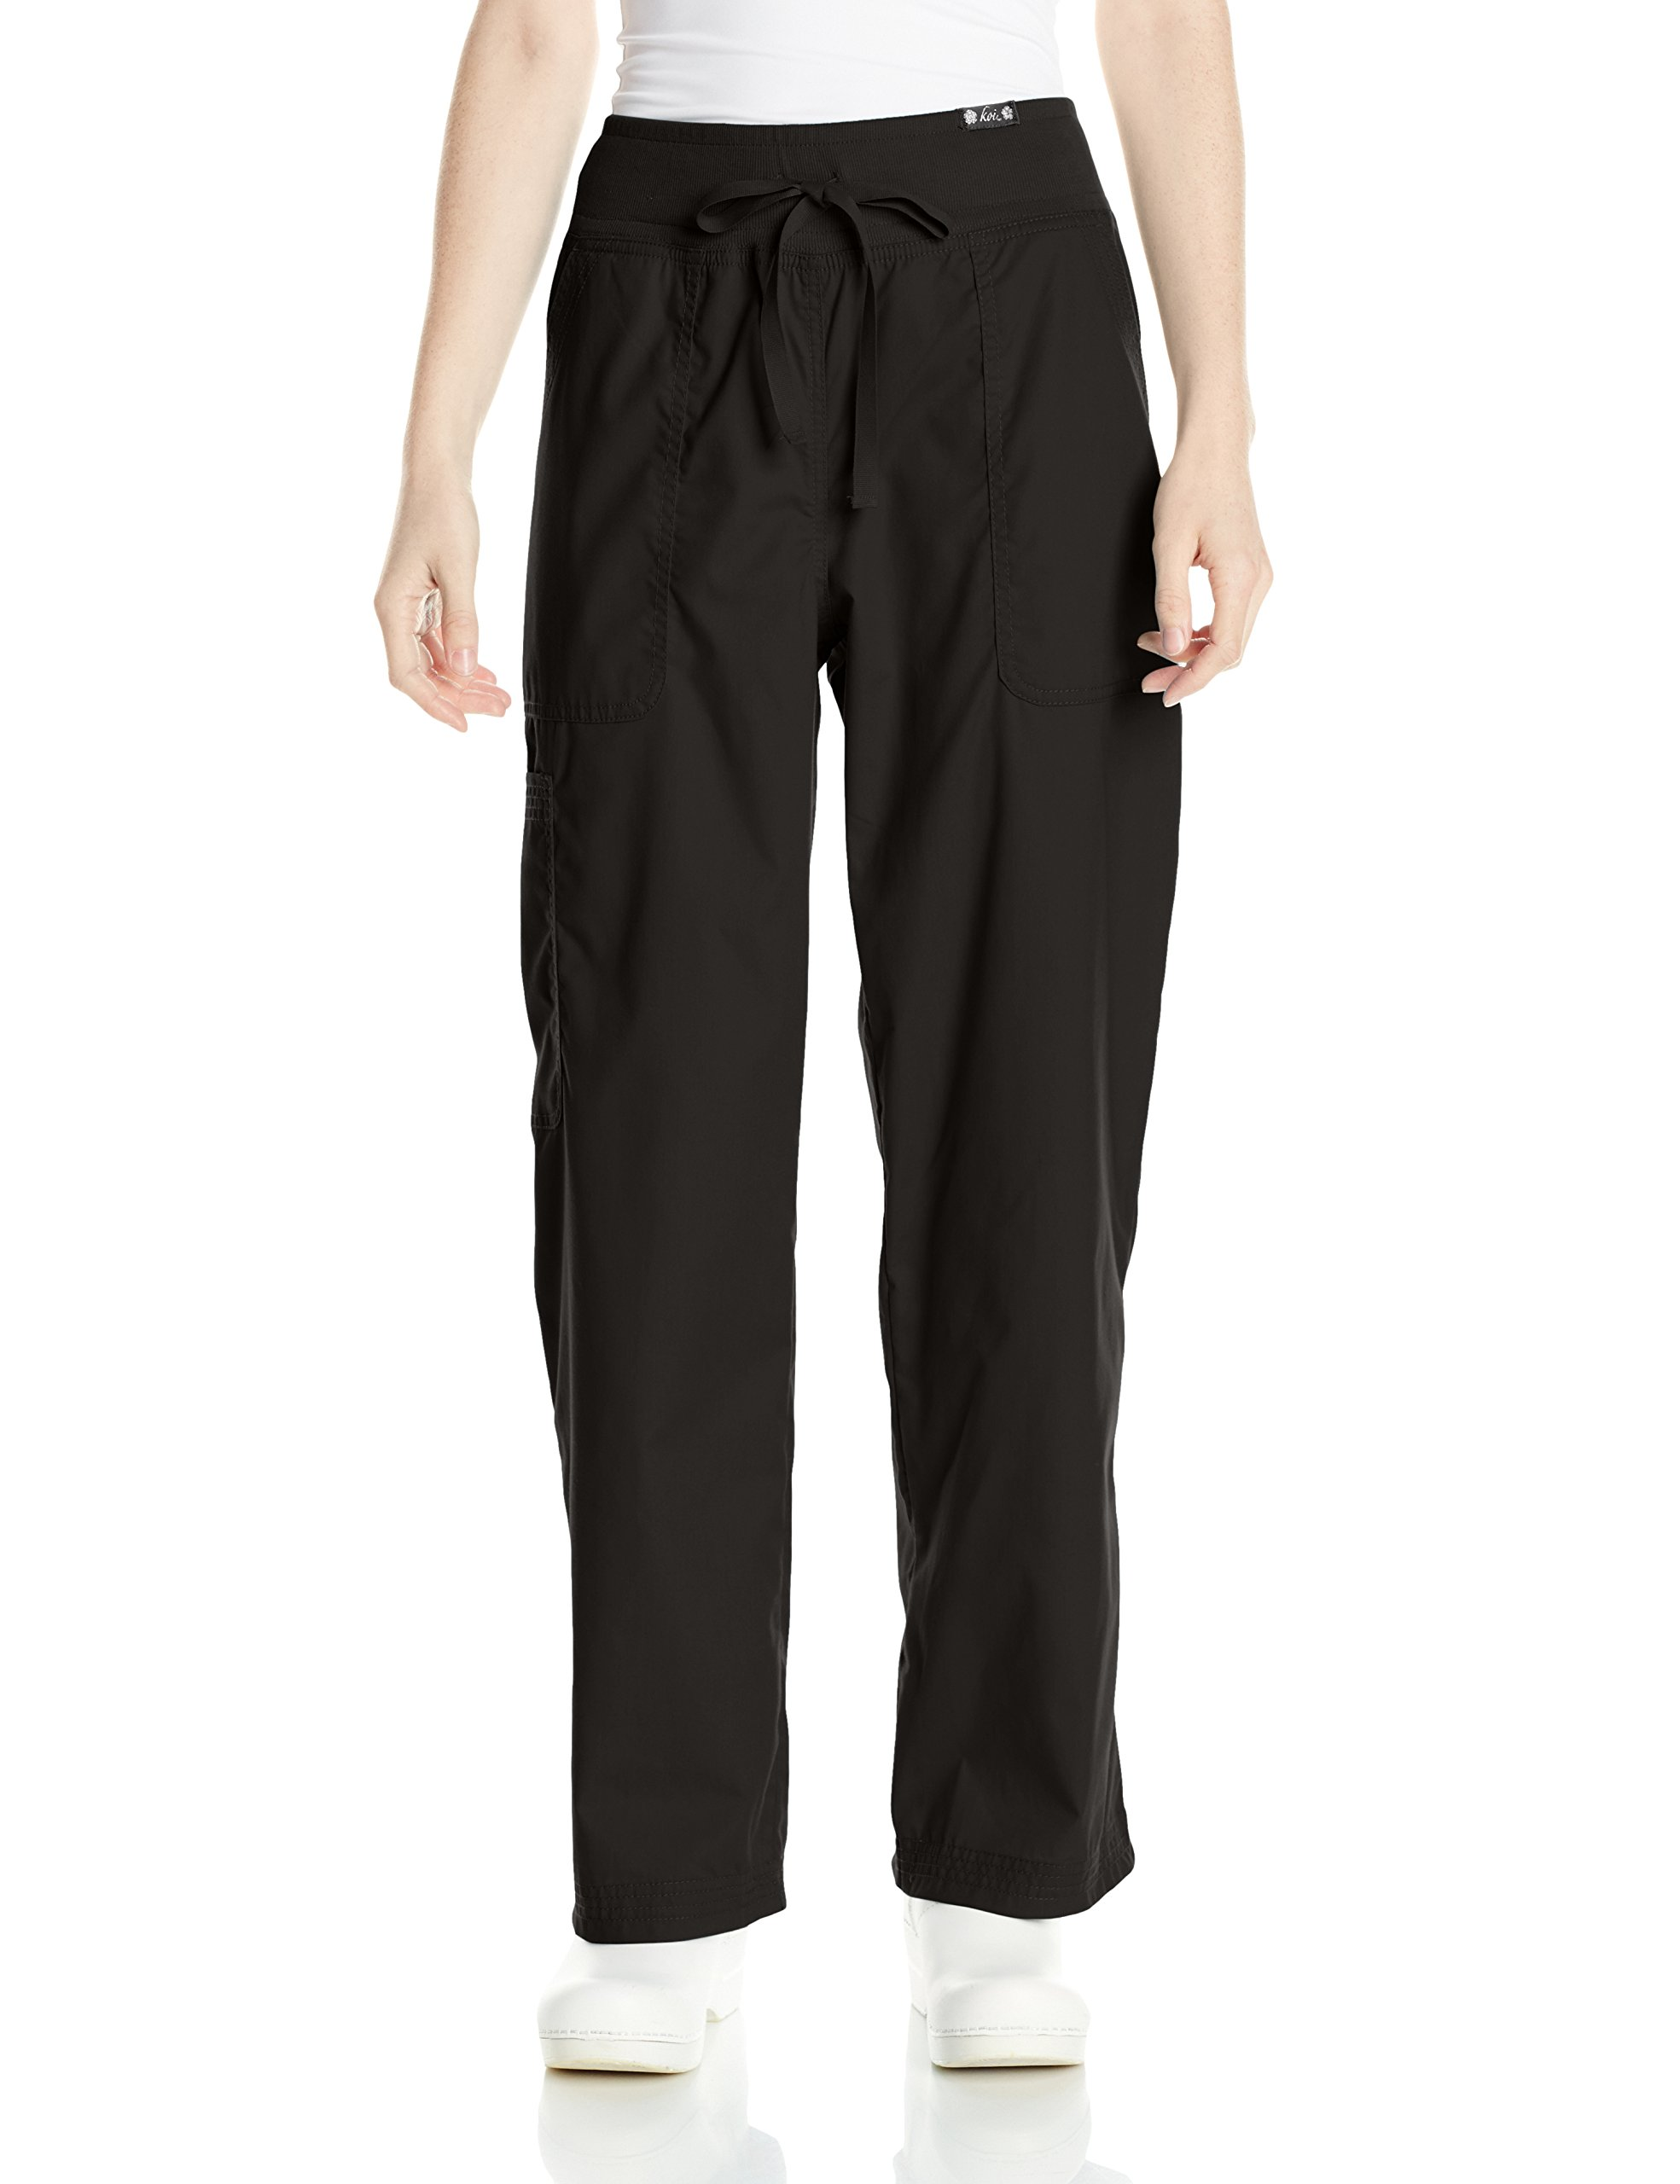 KOI Women's Petite Morgan Ultra Comfy Yoga-Style Cargo Scrub Pants, Black, Medium/Petite